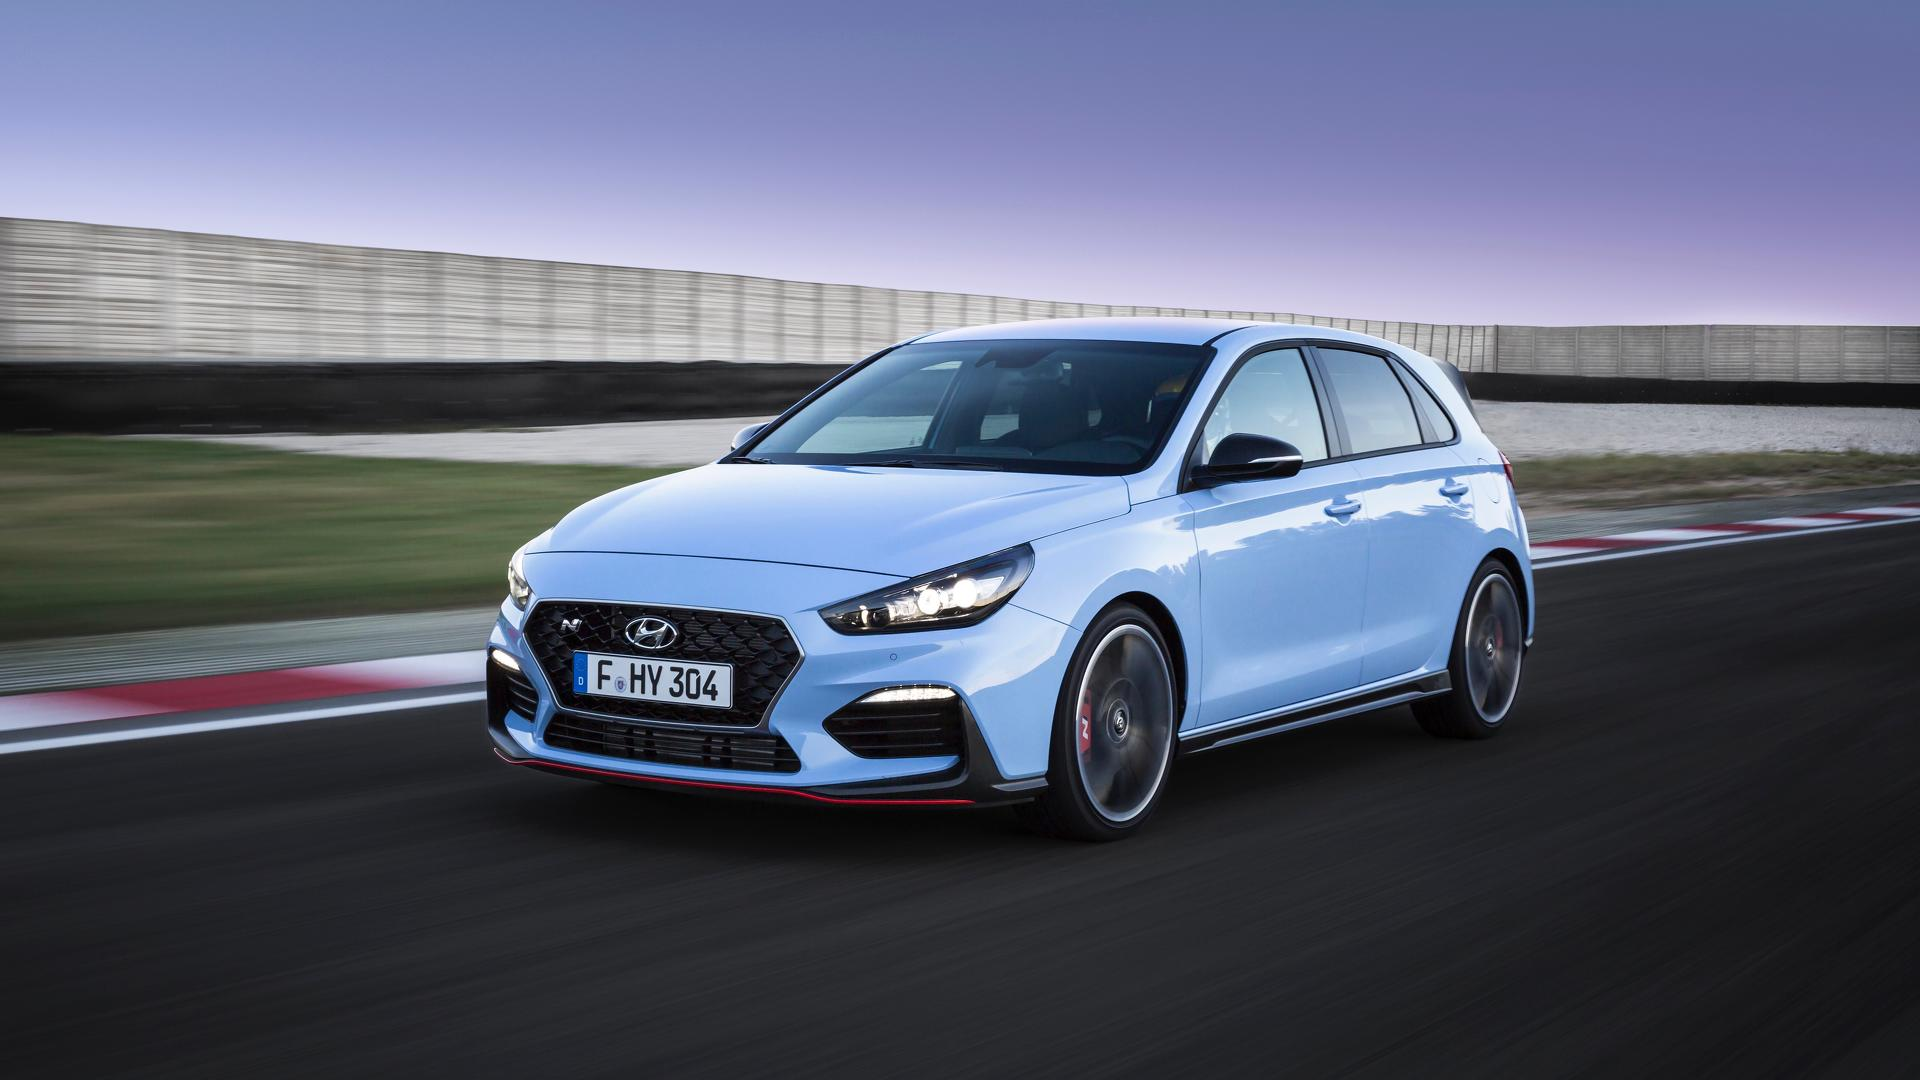 hyundai i30 n officially revealed to spice up hot hatch game. Black Bedroom Furniture Sets. Home Design Ideas